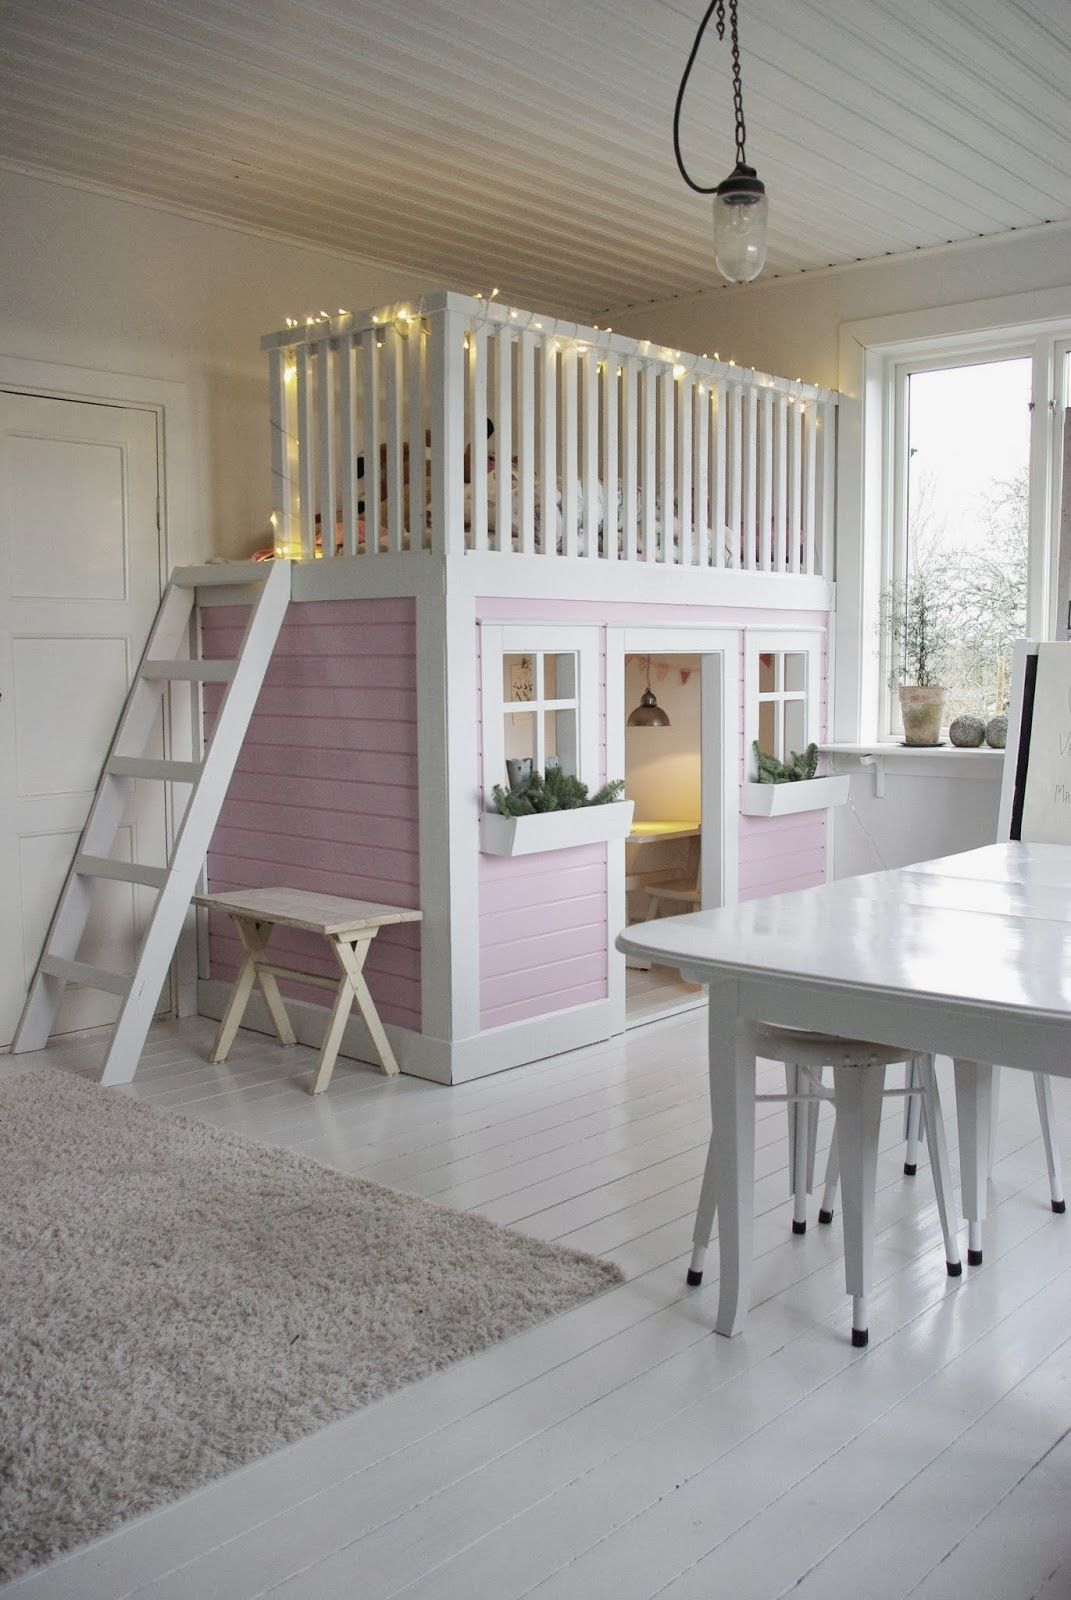 Now This Would Be A Dream Bedroom/playroom For A Special Little One